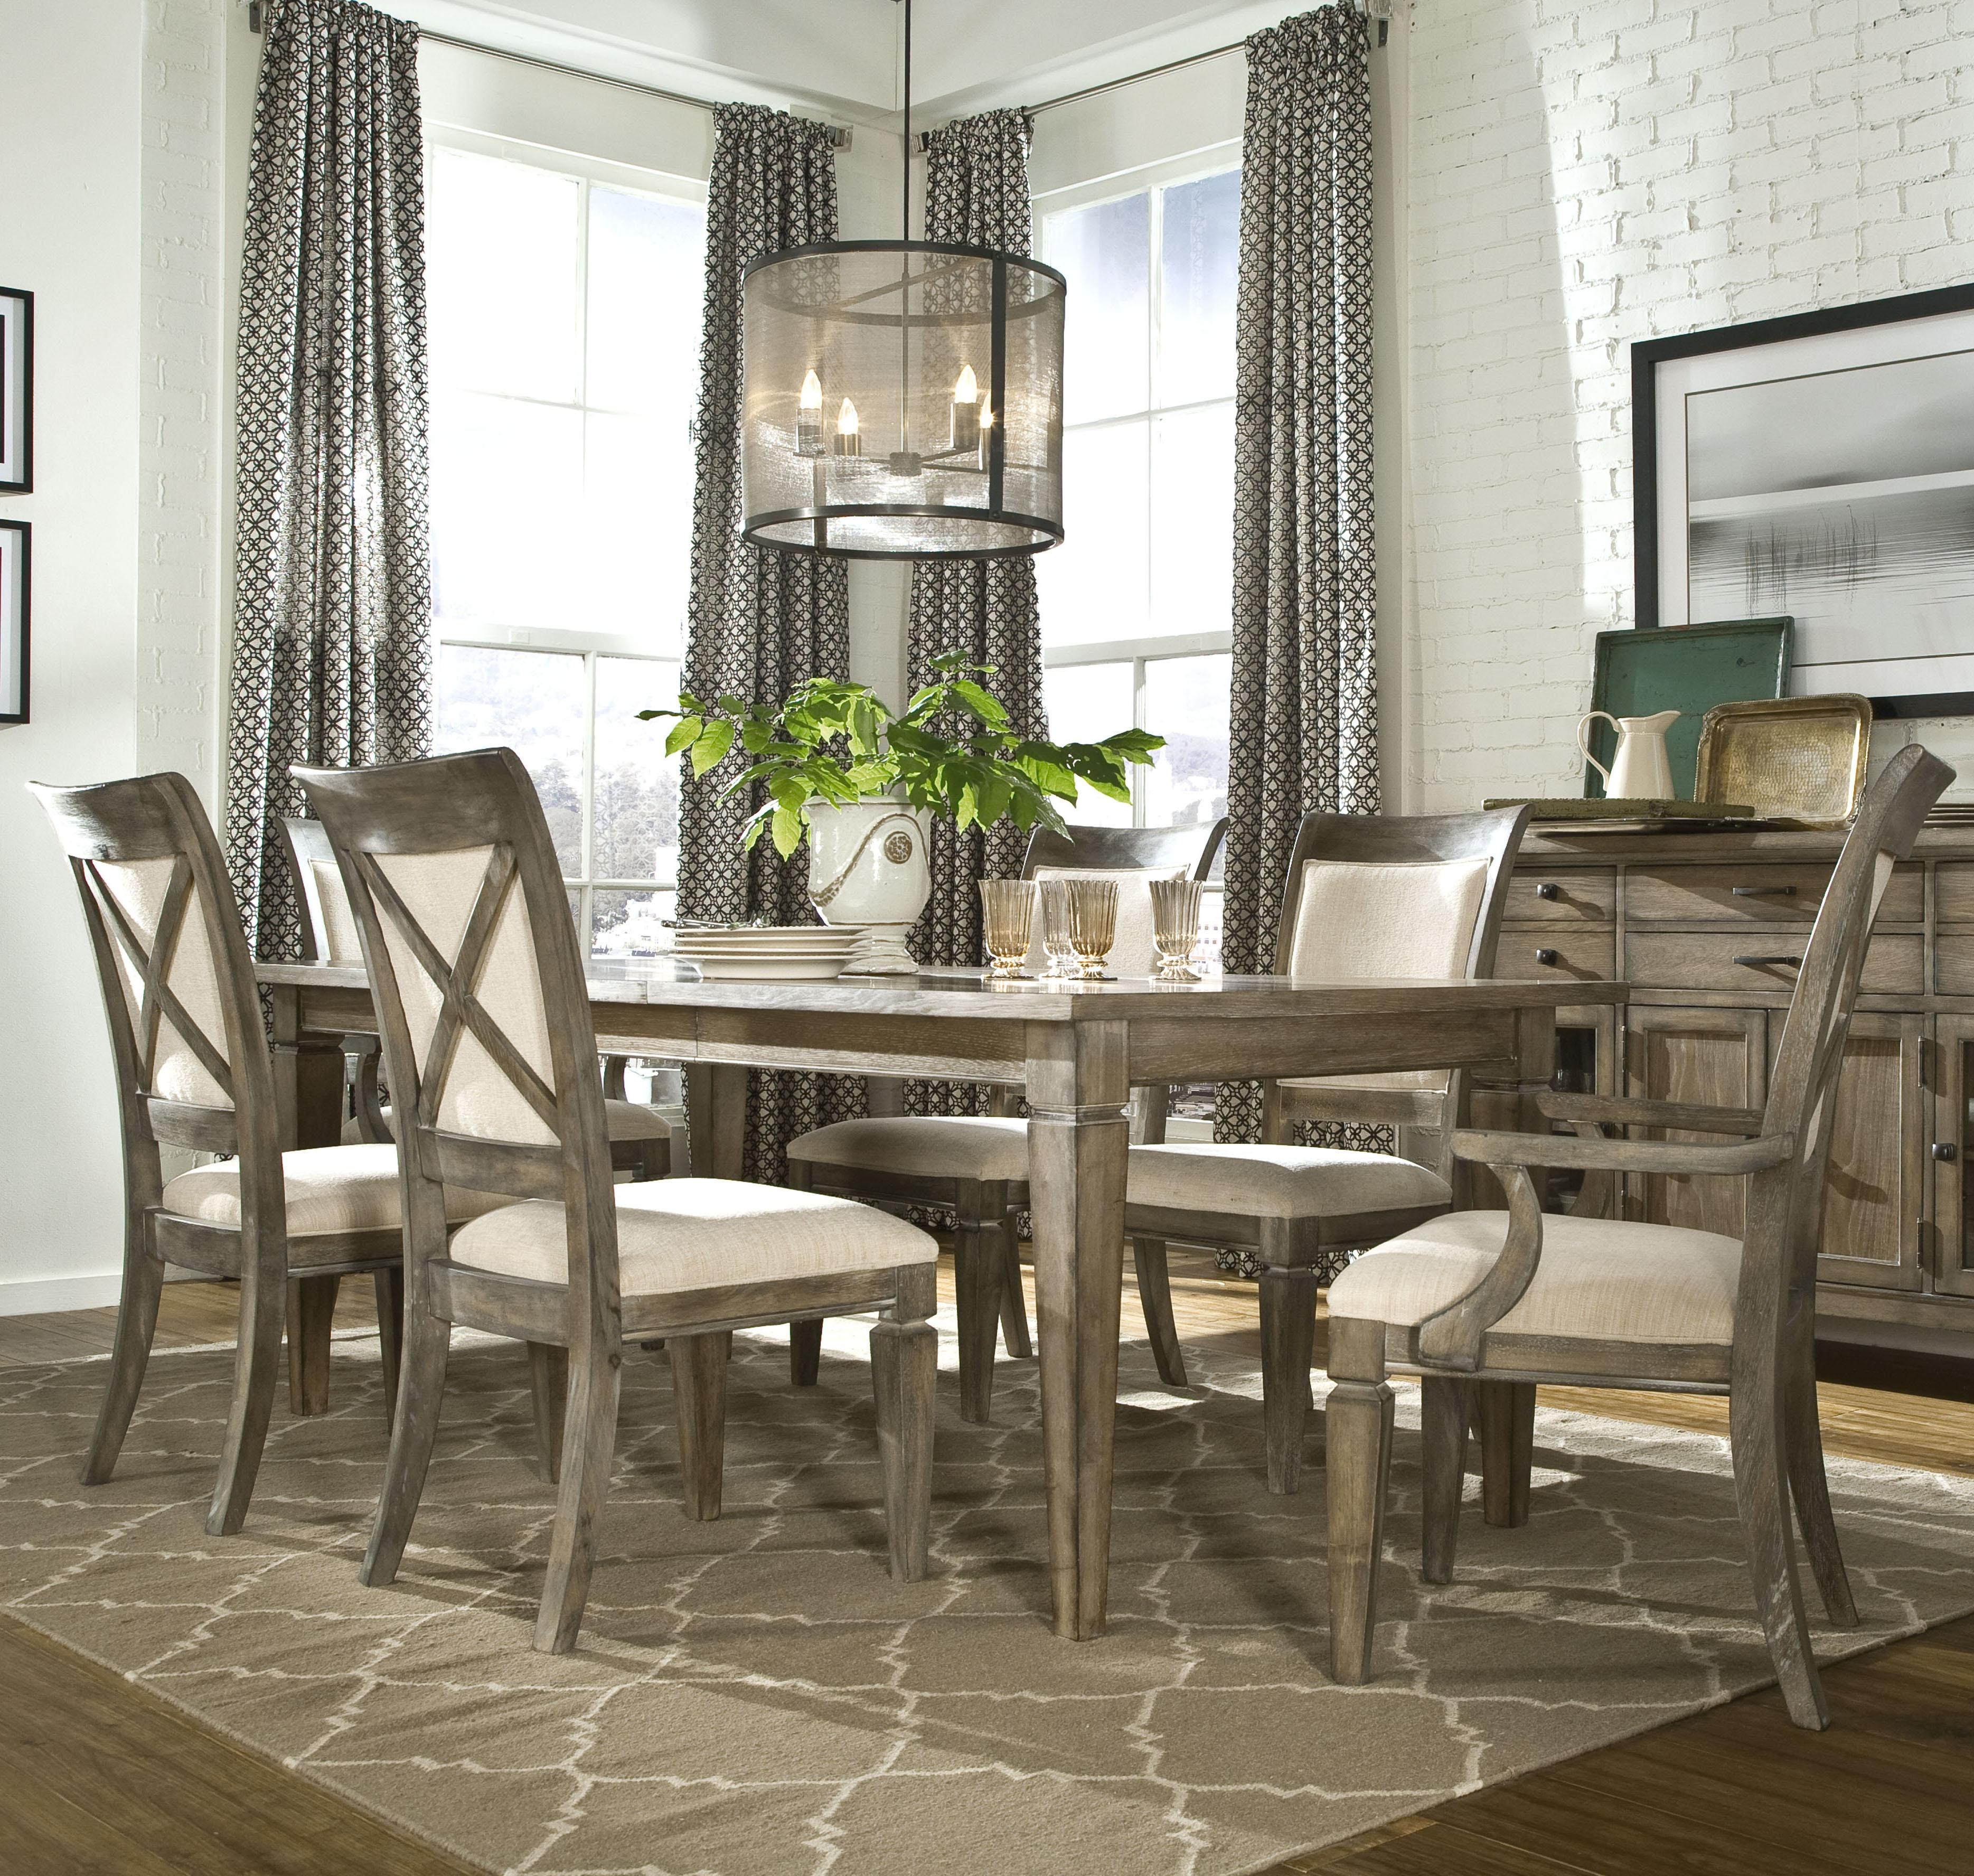 Legacy Classic Brownstone Village 7-Piece Leg Dining Table and Chair Set - Item Number: 2760-121+2x141 KD+4x140 KD